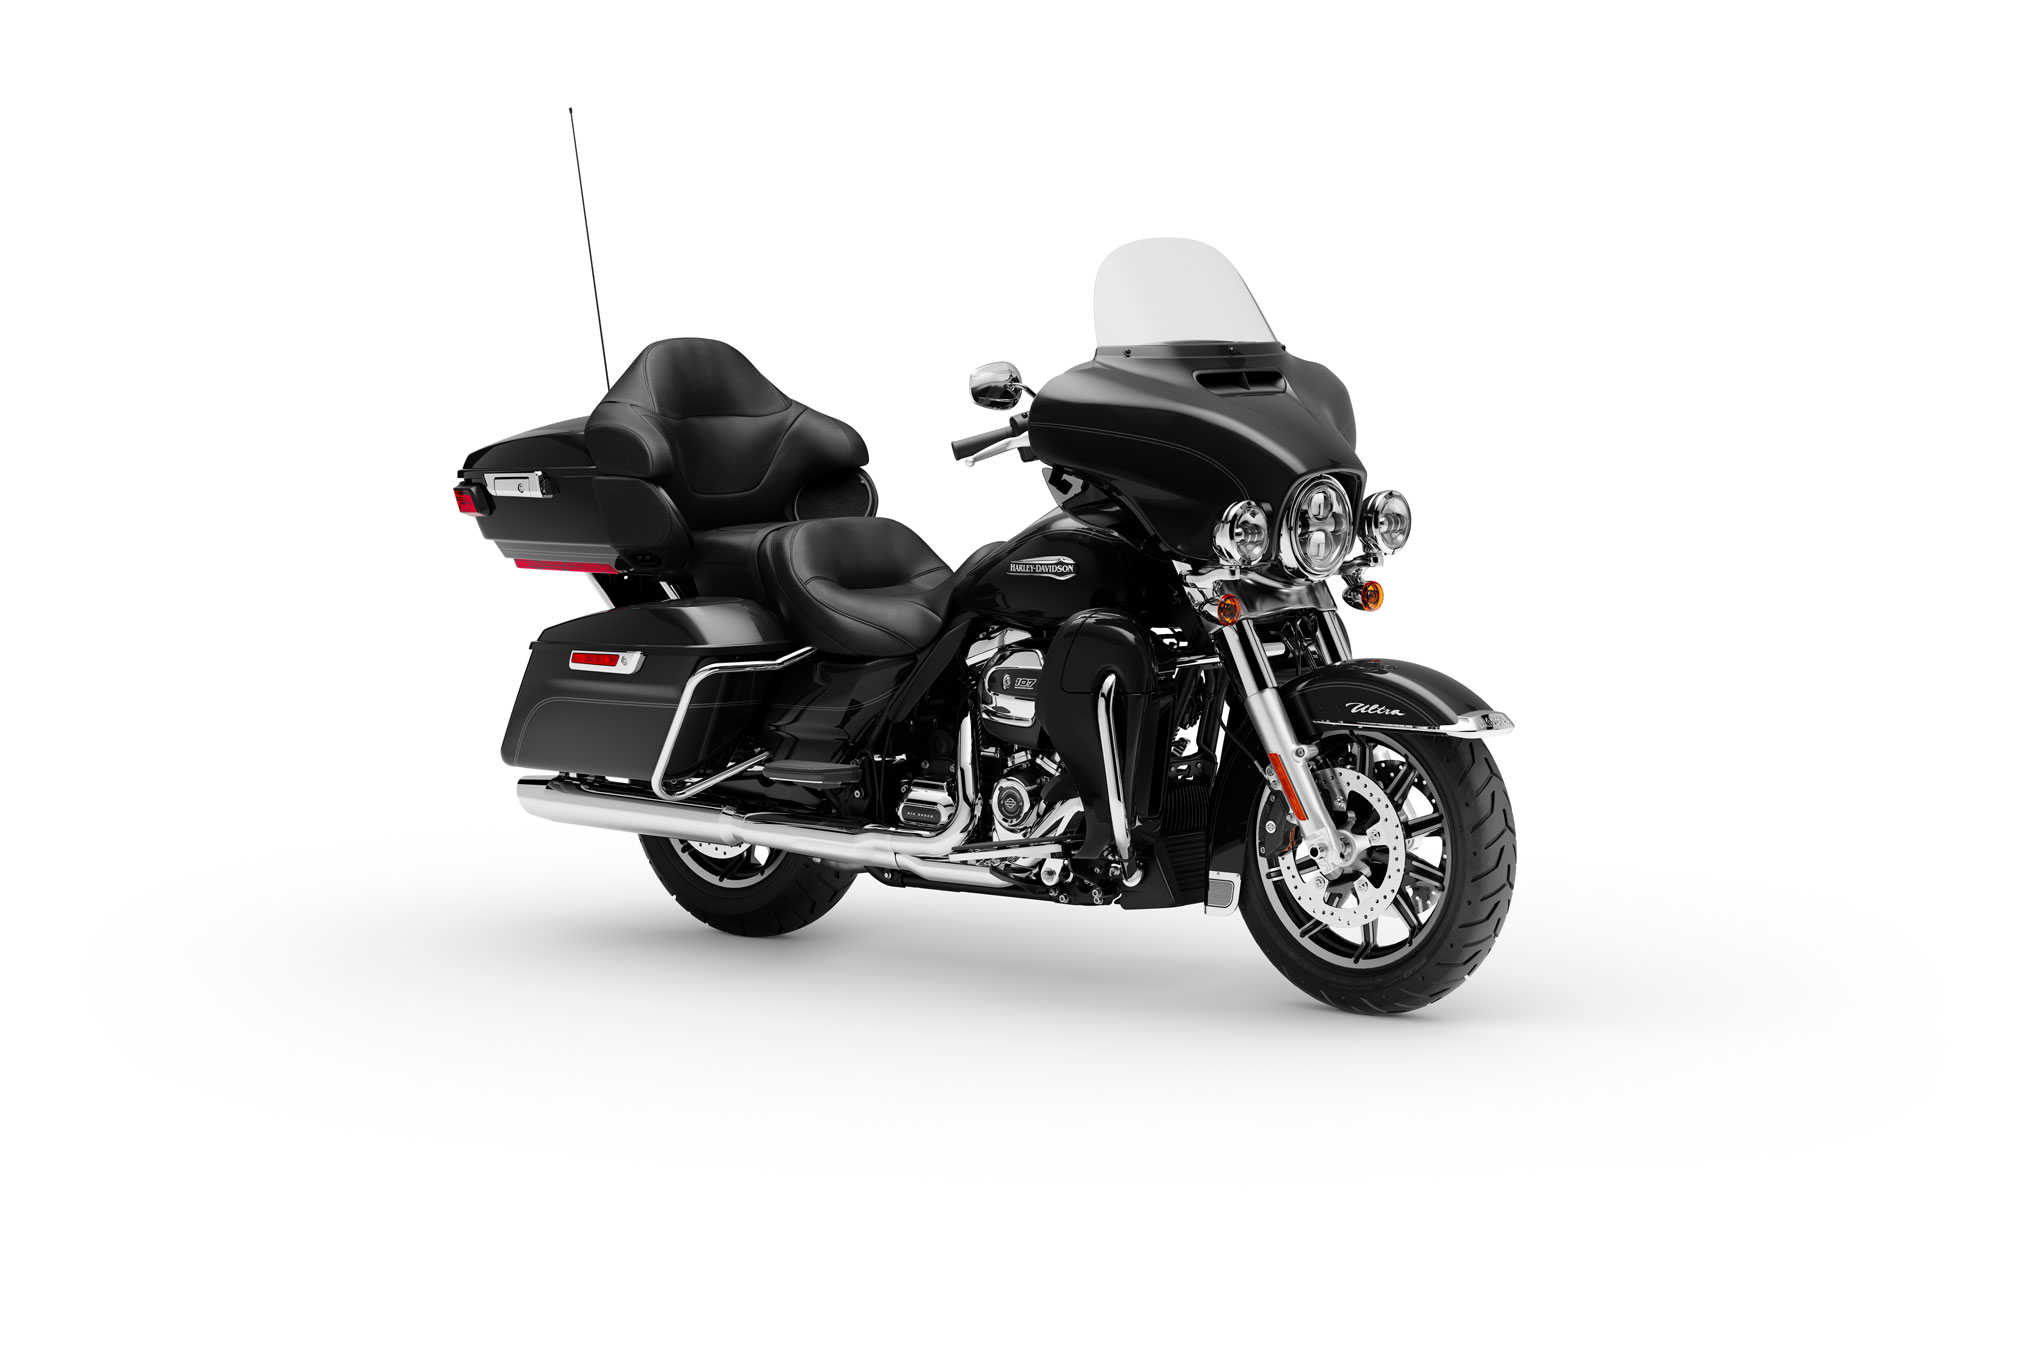 2019 harley davidson electra glide ultra classic guide total motorcycle. Black Bedroom Furniture Sets. Home Design Ideas